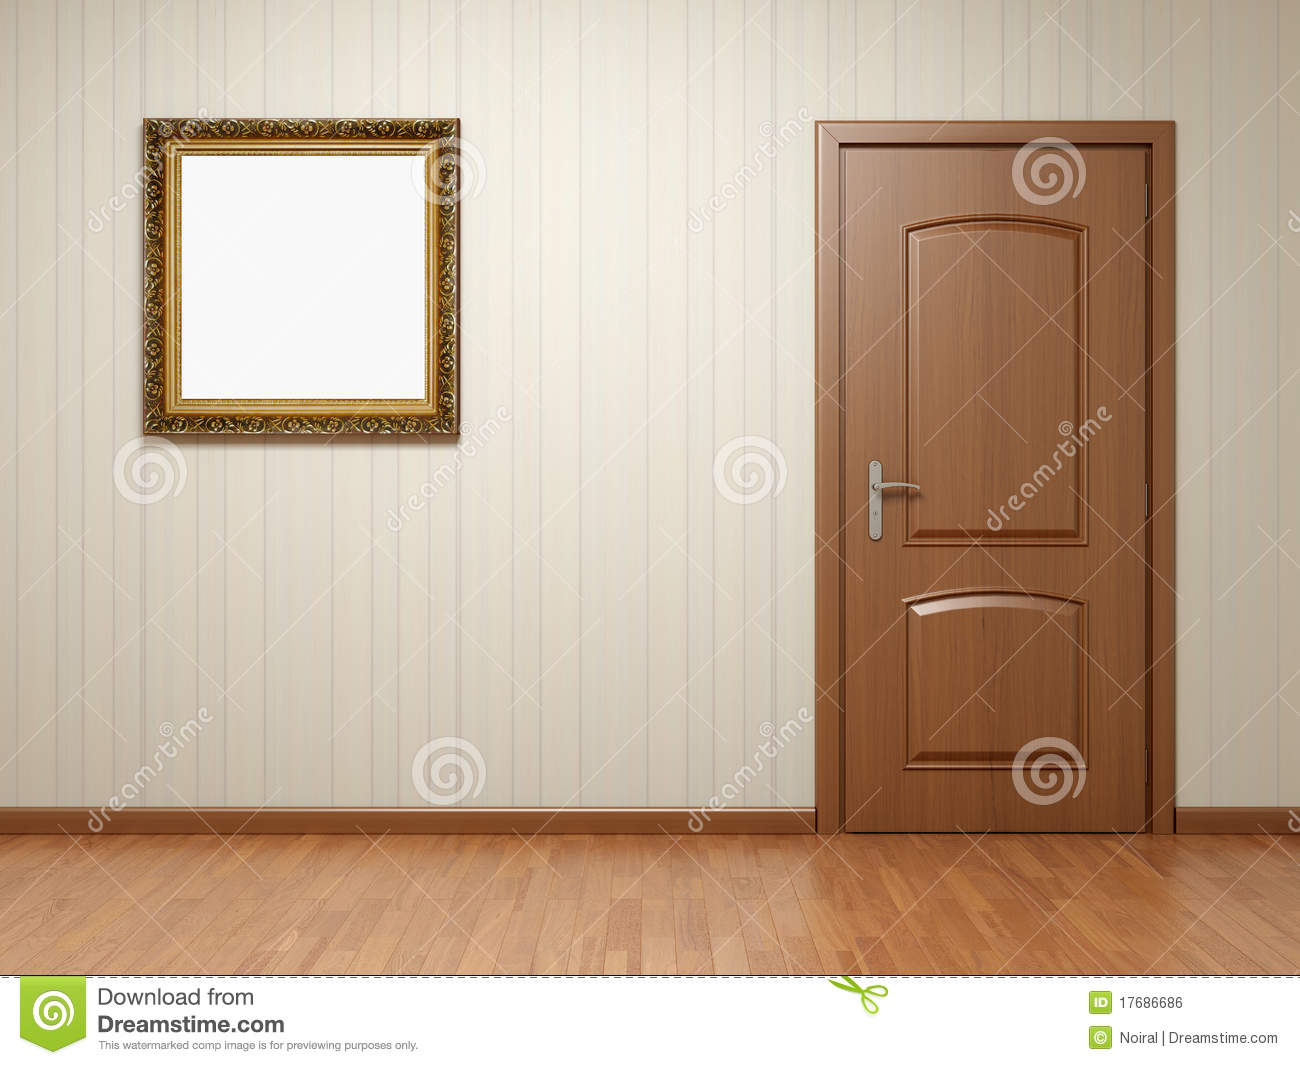 Empty room with door and frame royalty free stock image for Room door frame